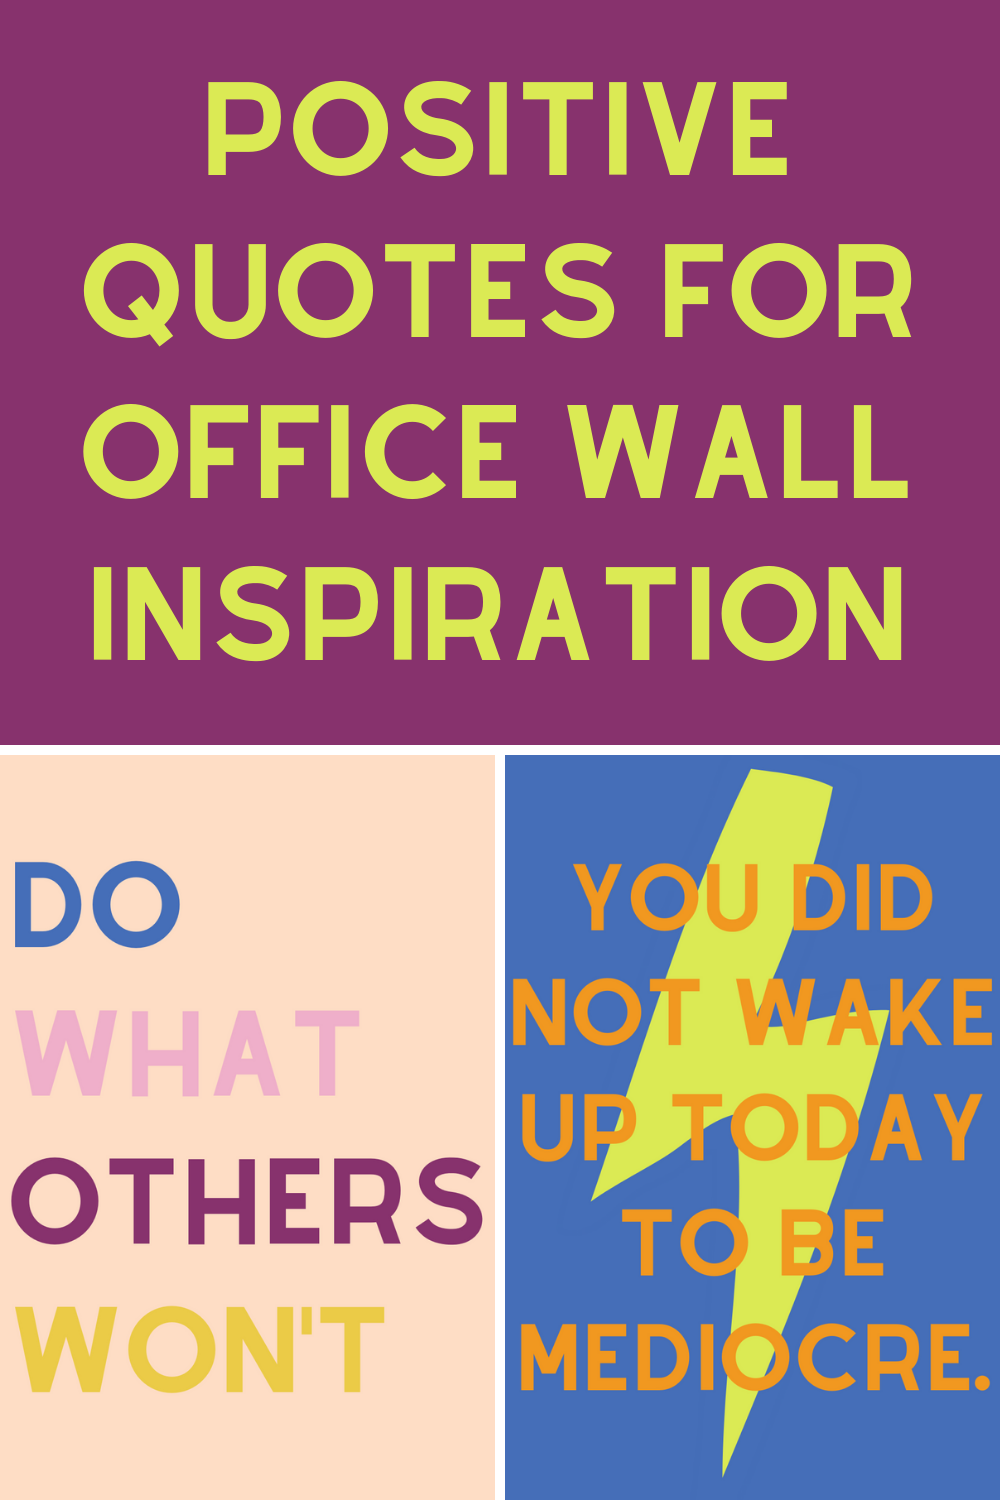 Quotes for Office Wall